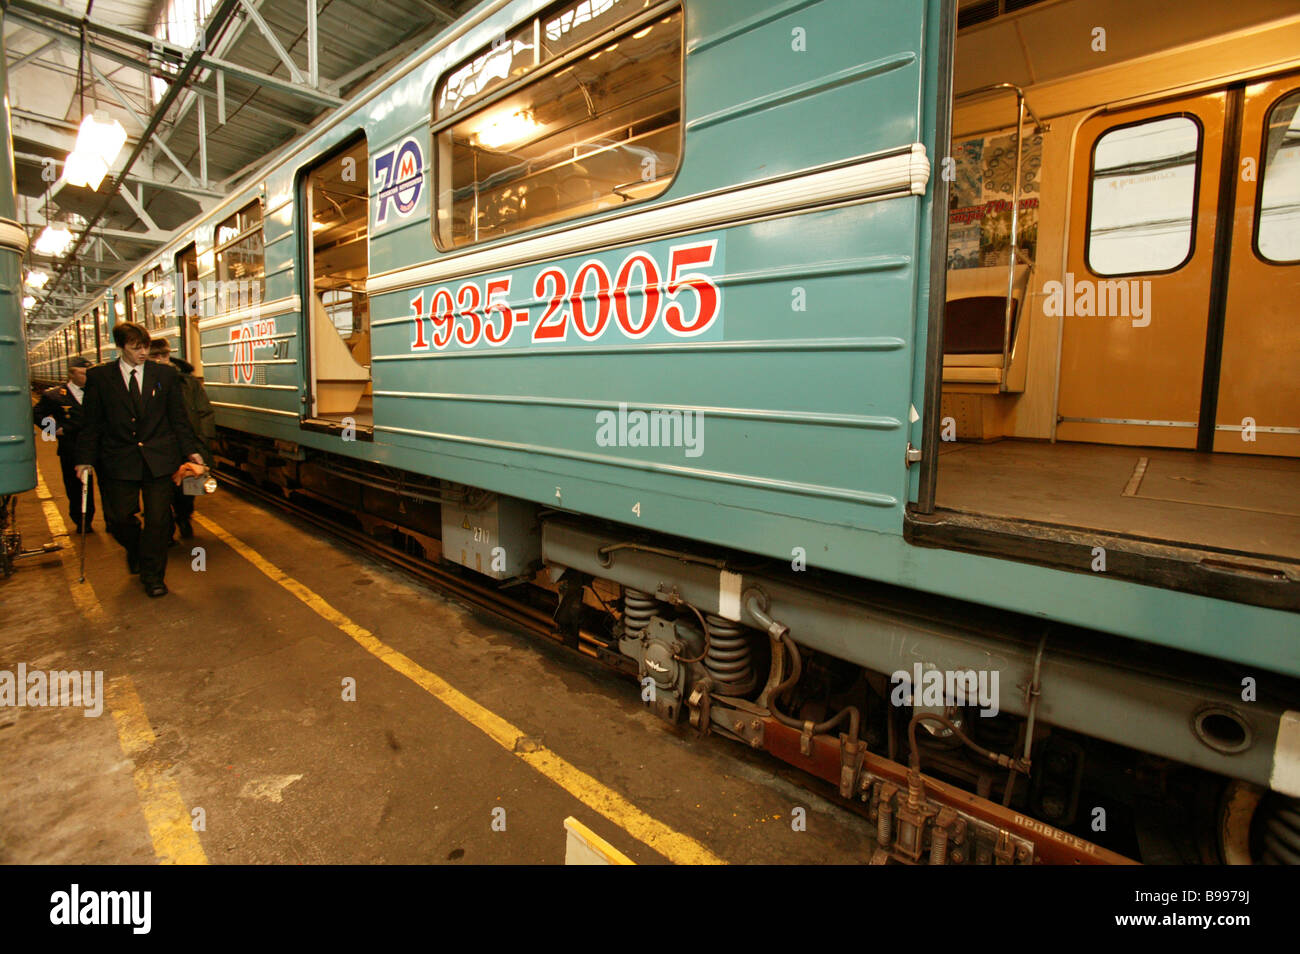 The jubilee train Moscow Metro s 70th Birthday recently appeared on the Sokolniki line - Stock Image